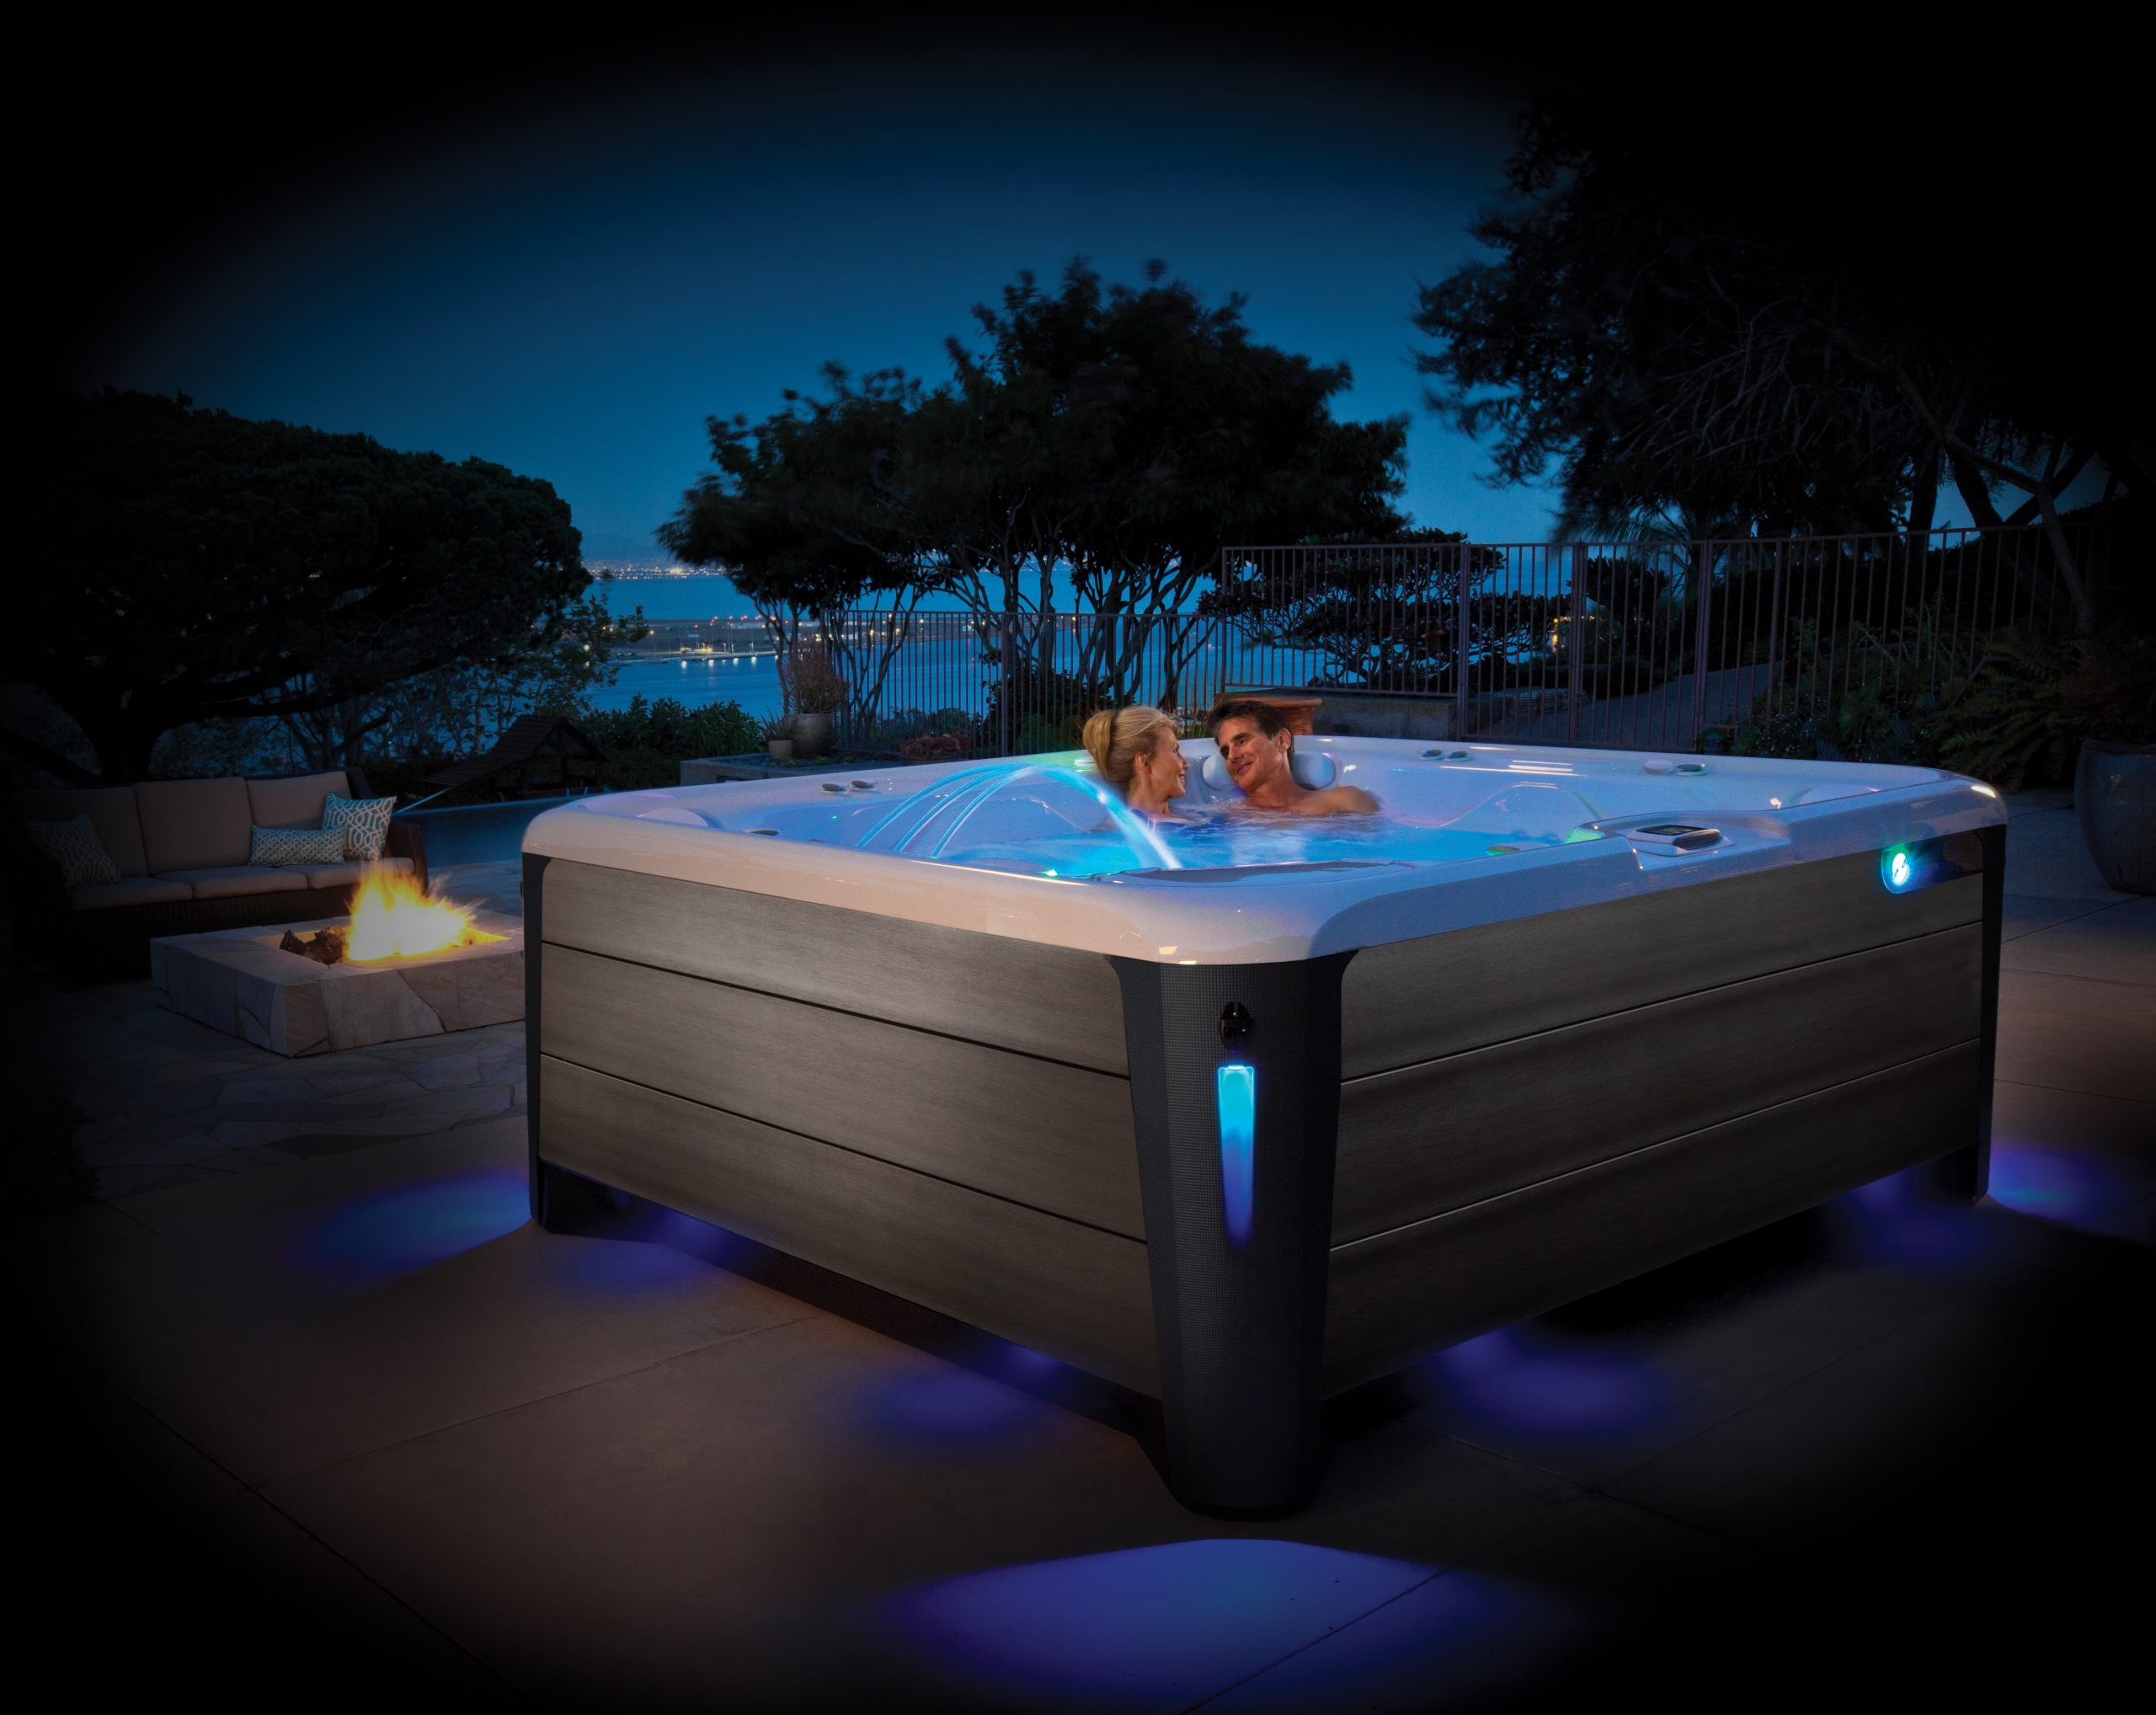 Planning The Perfect Hot Tub Date Night